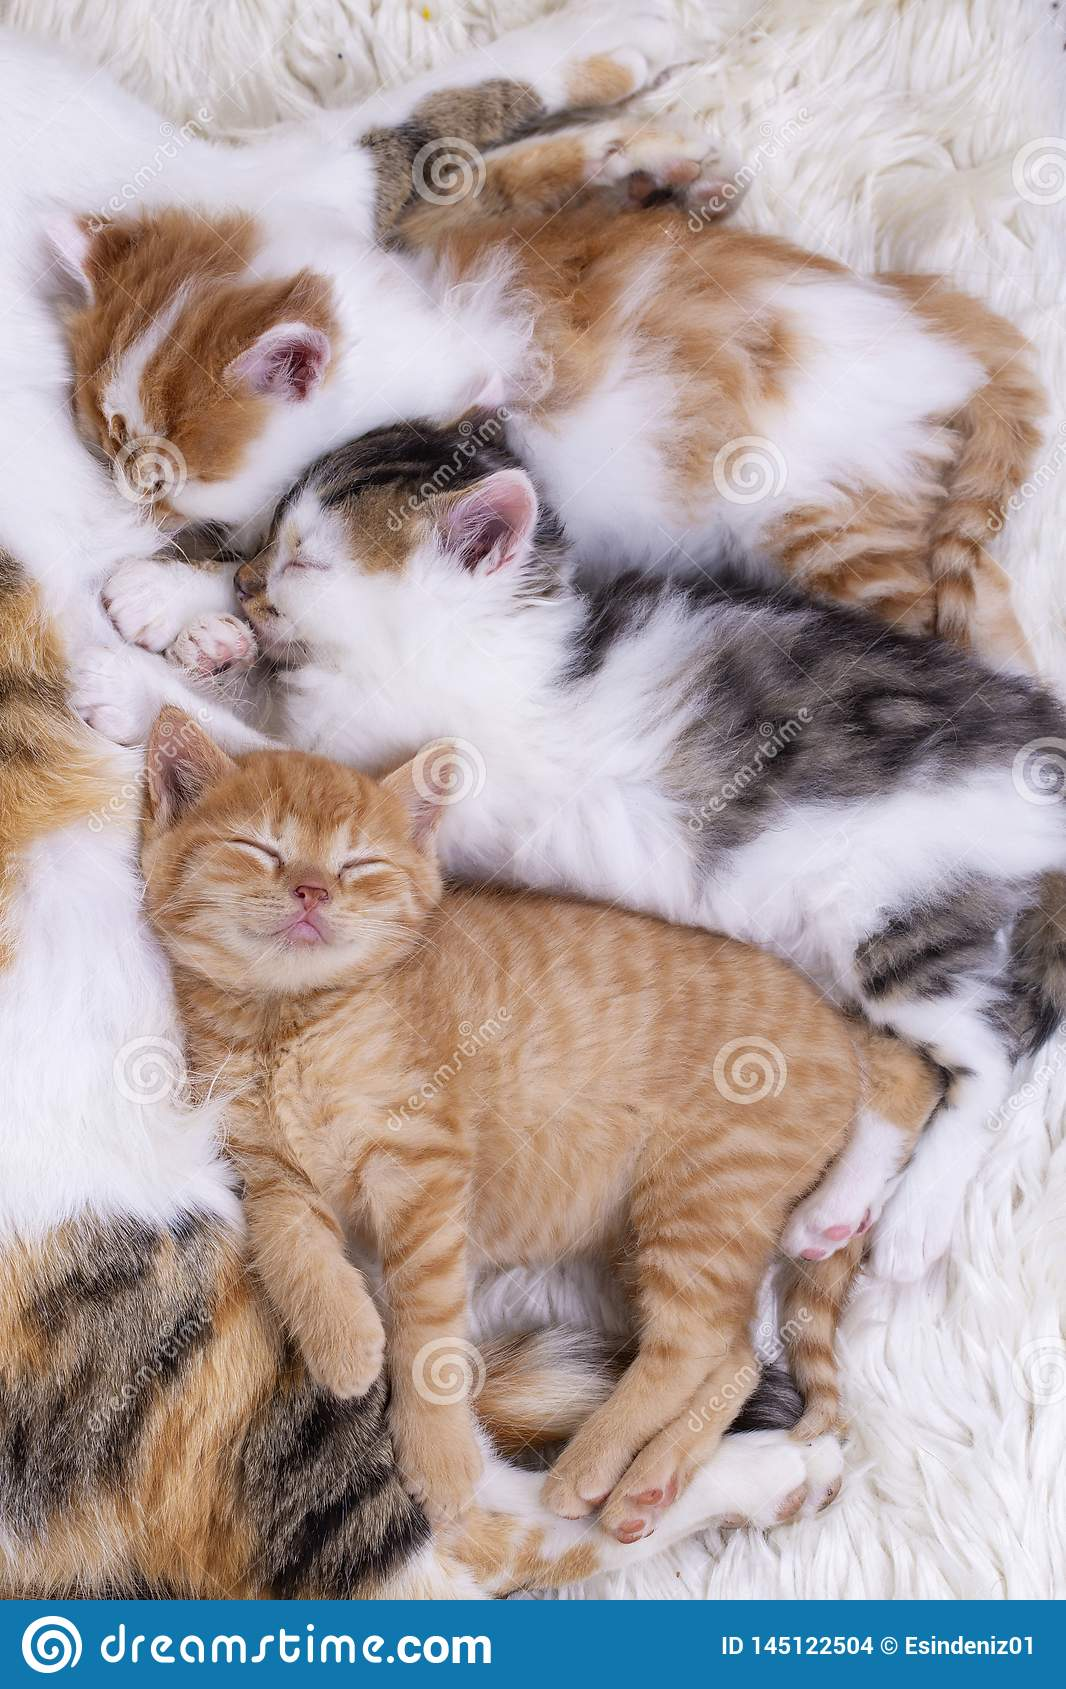 Pet Animal Cute Kitten Baby Cat And Mother Cat Stock Photo Image Of White Small 145122504